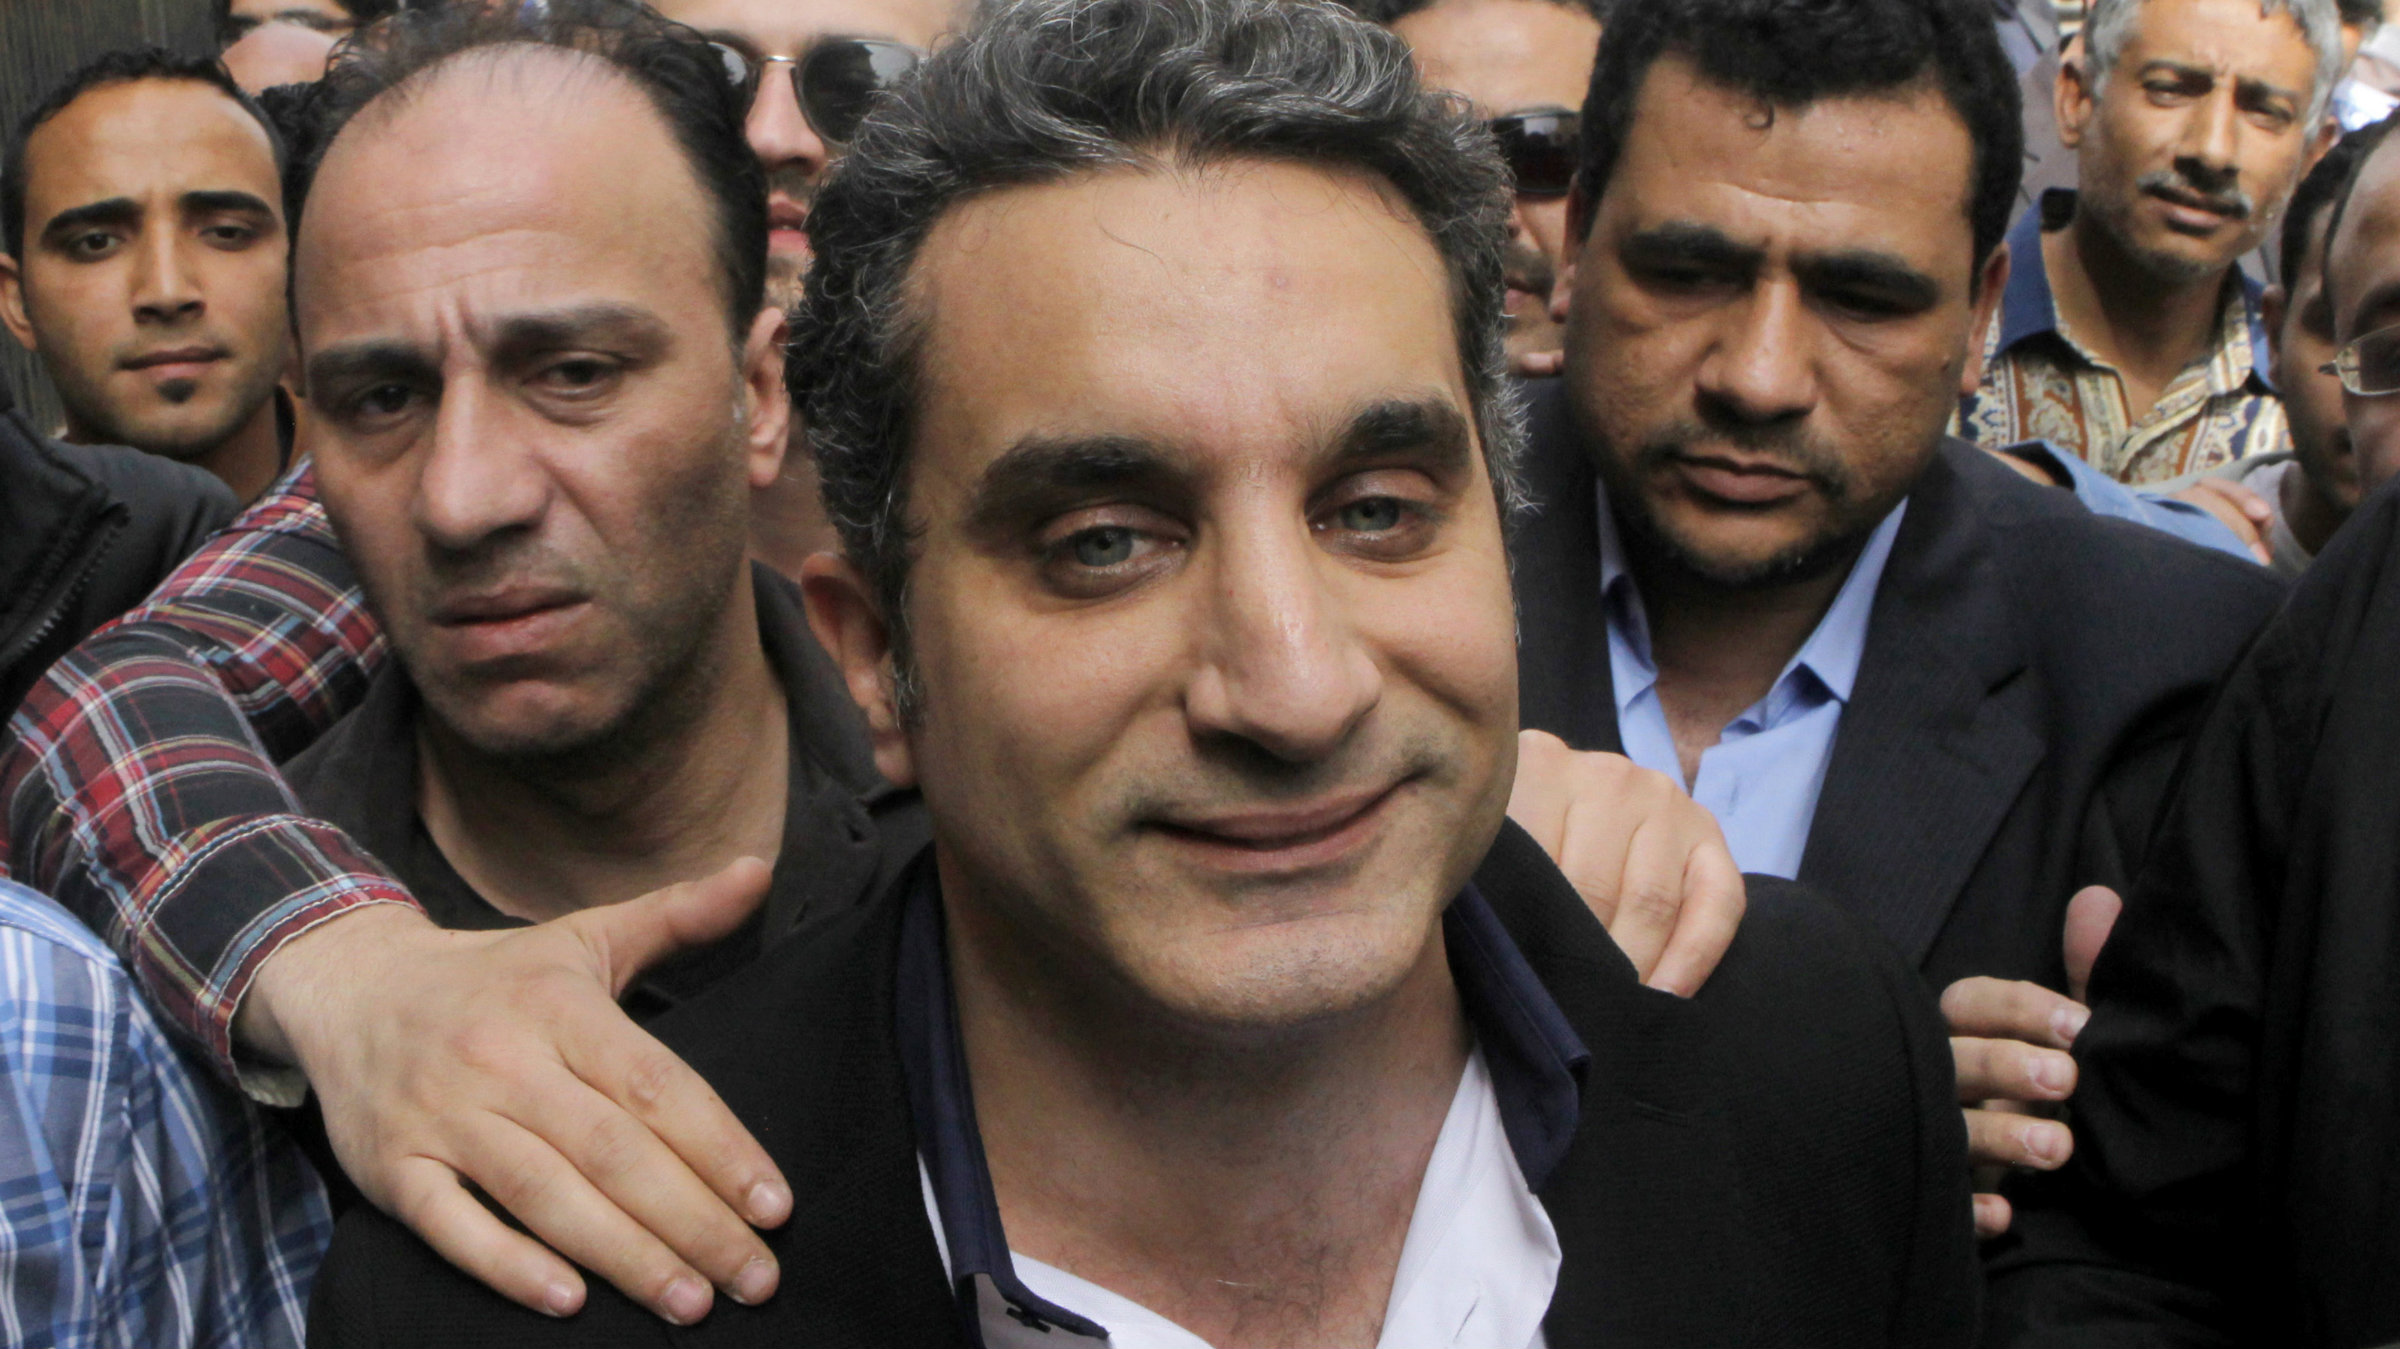 """Egyptian authorities say Bassem Youssef uses """"unacceptable and offensive"""" language."""